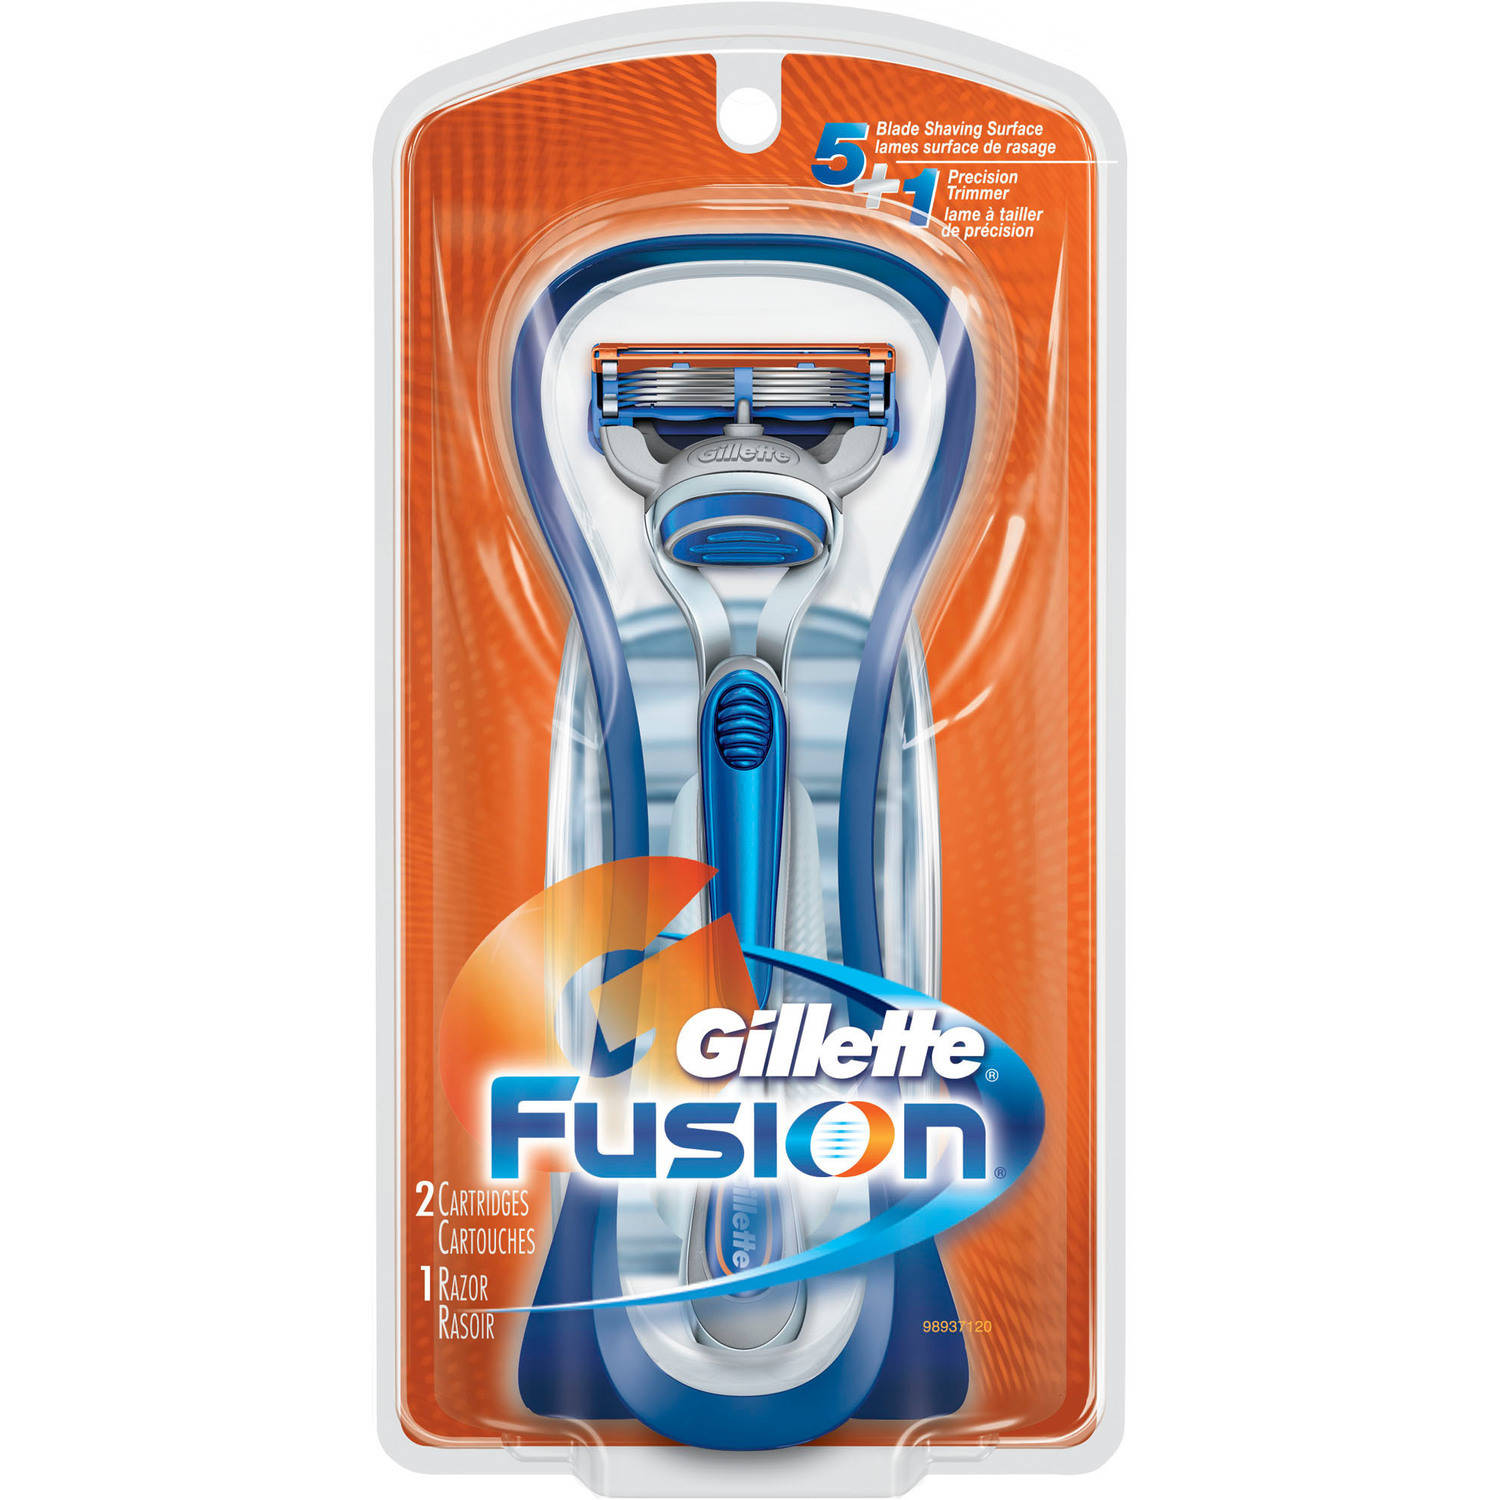 Gillette Fusion Manual Razor with 2 Cartridges, 3 pc